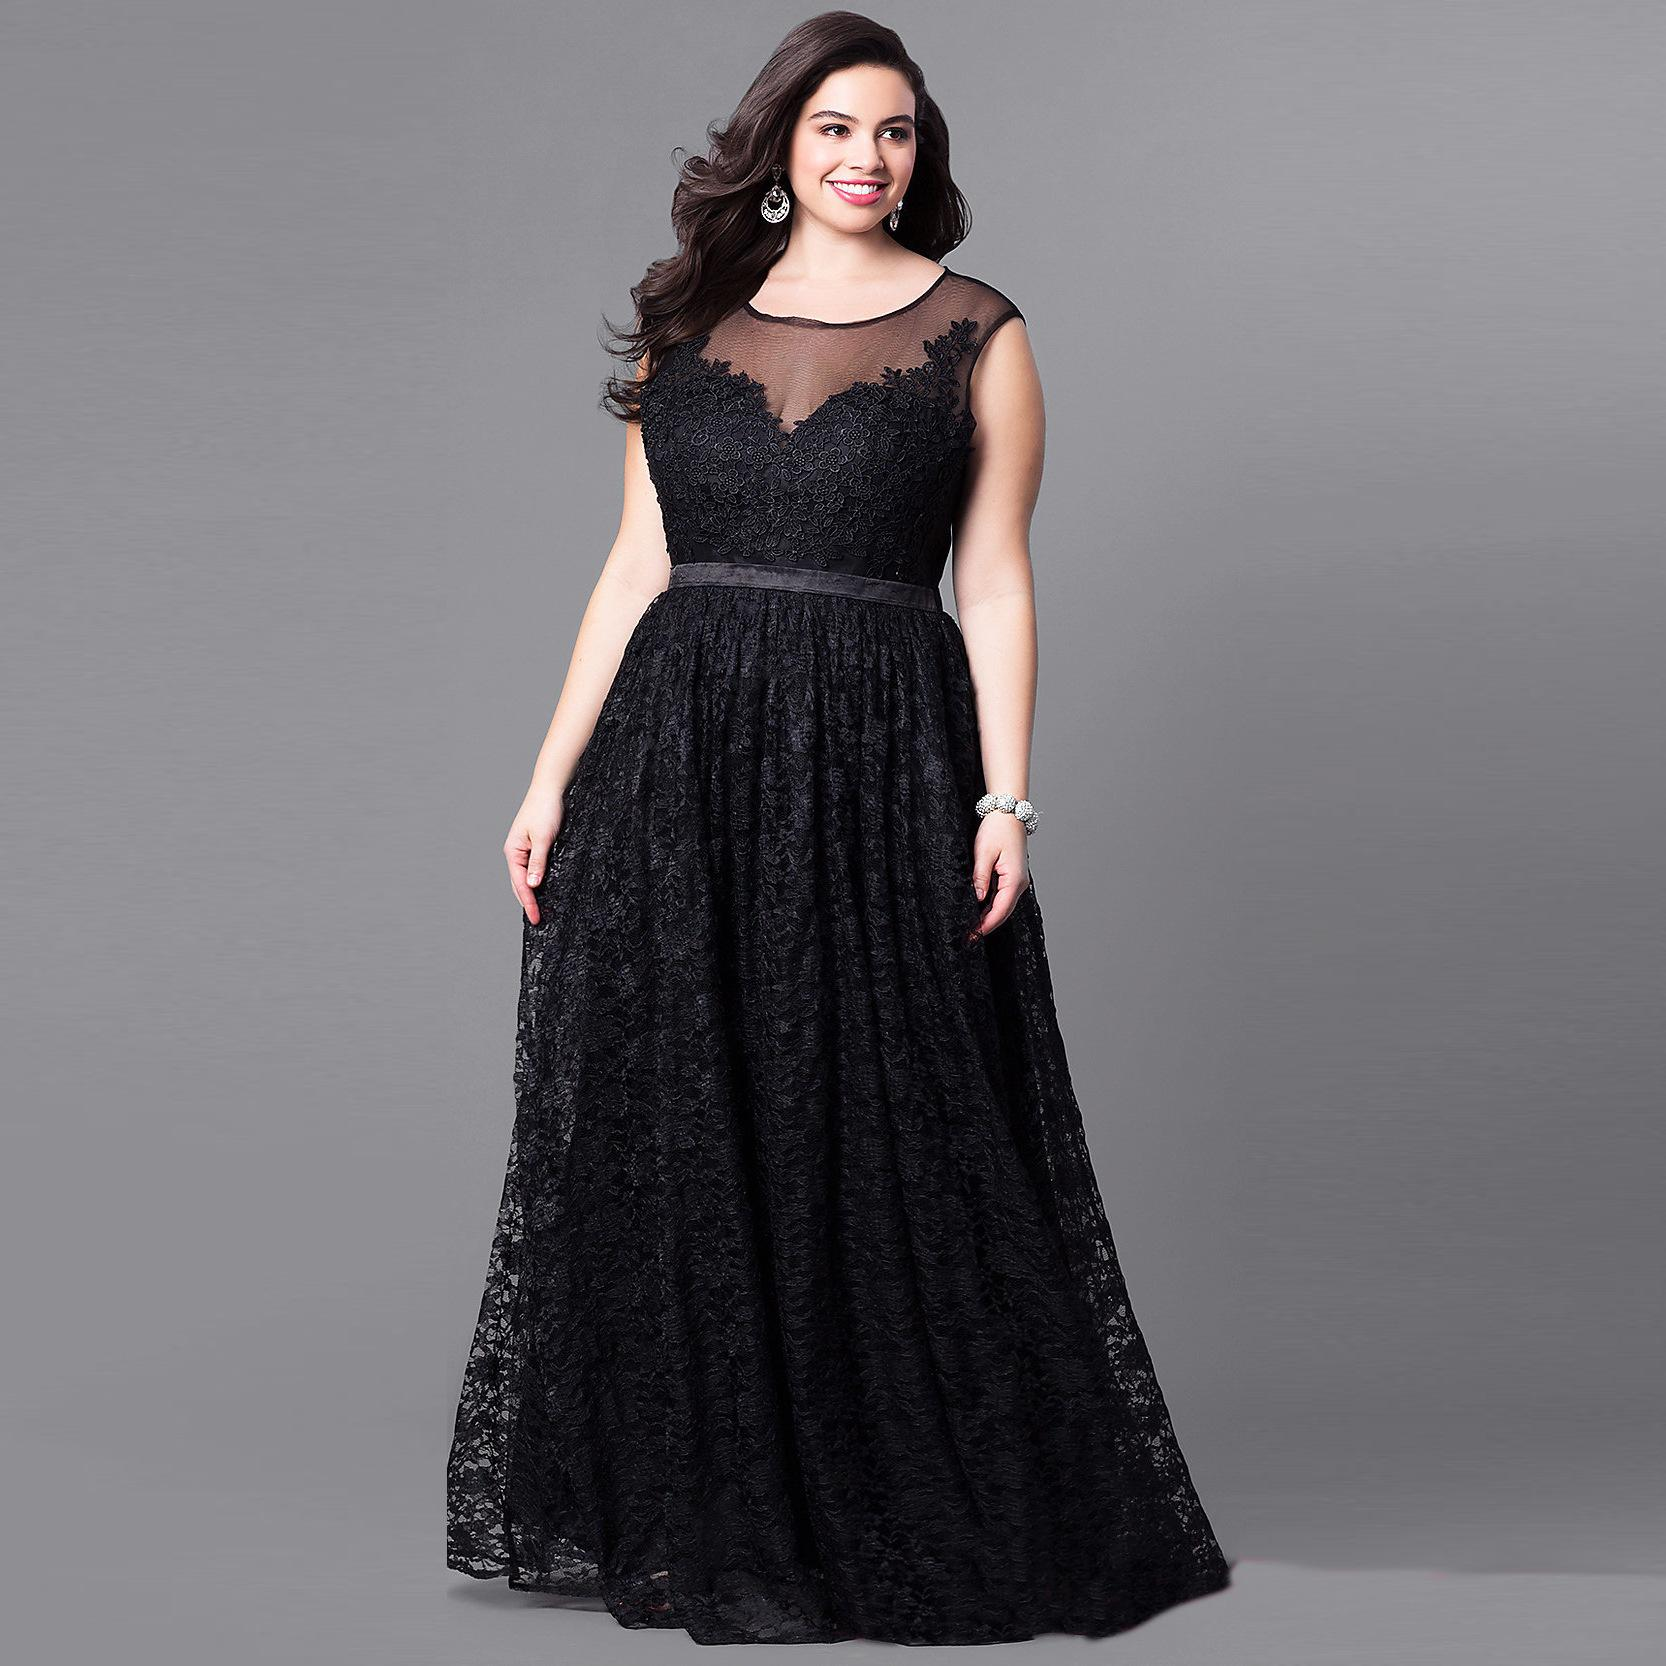 6270bbd0791ce Plus Size Woman Vintage Dress Black Sleeveless Long Evening Gown 2018 Big  Size Hollow Out Maxi Lace Mesh Vestidos Elegant AF626 Plus Size Maxi Dress  ...